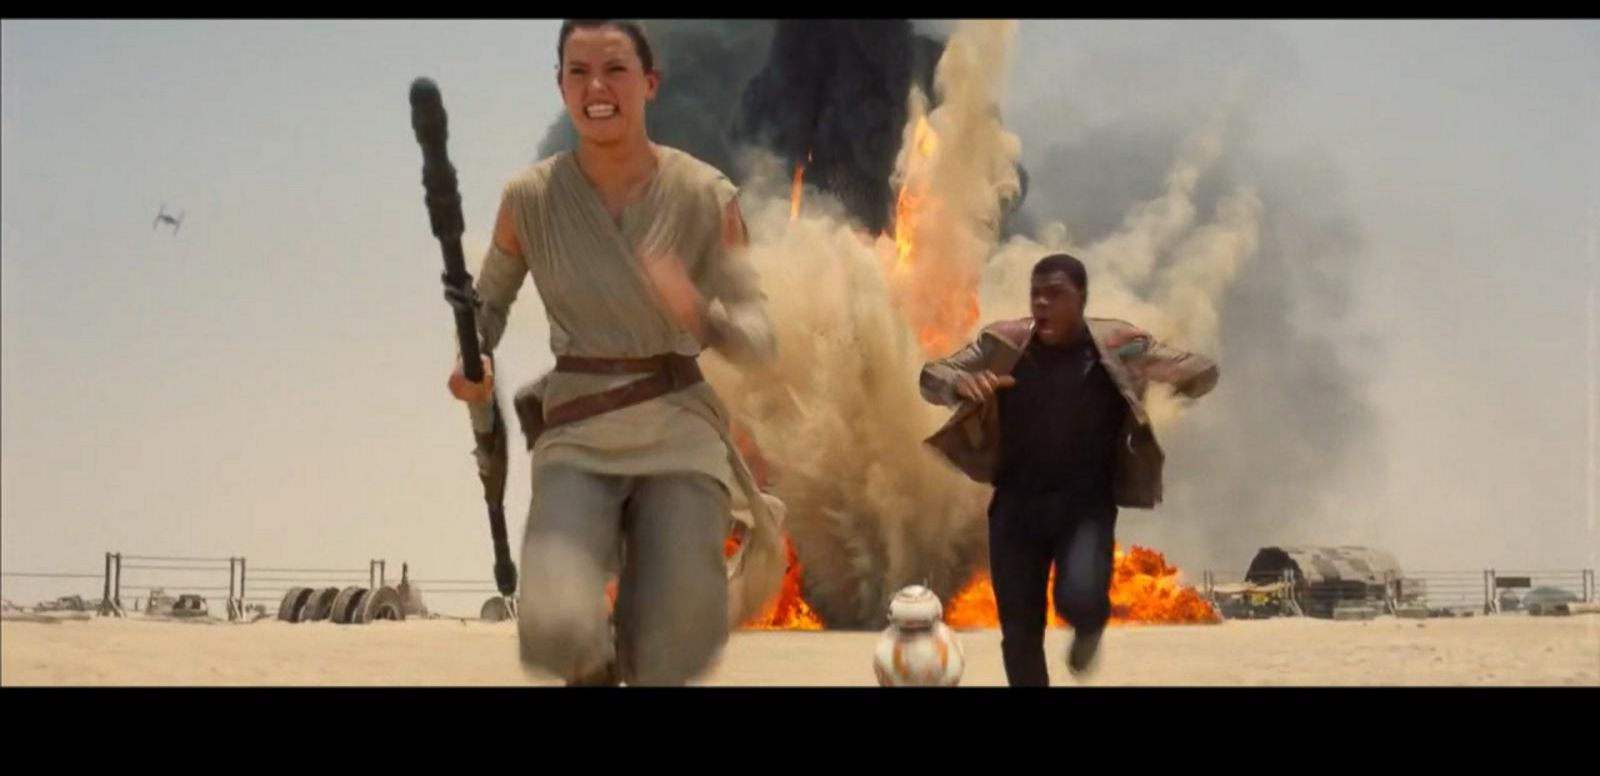 VIDEO: New 'Star Wars' Trailer Excites Fans